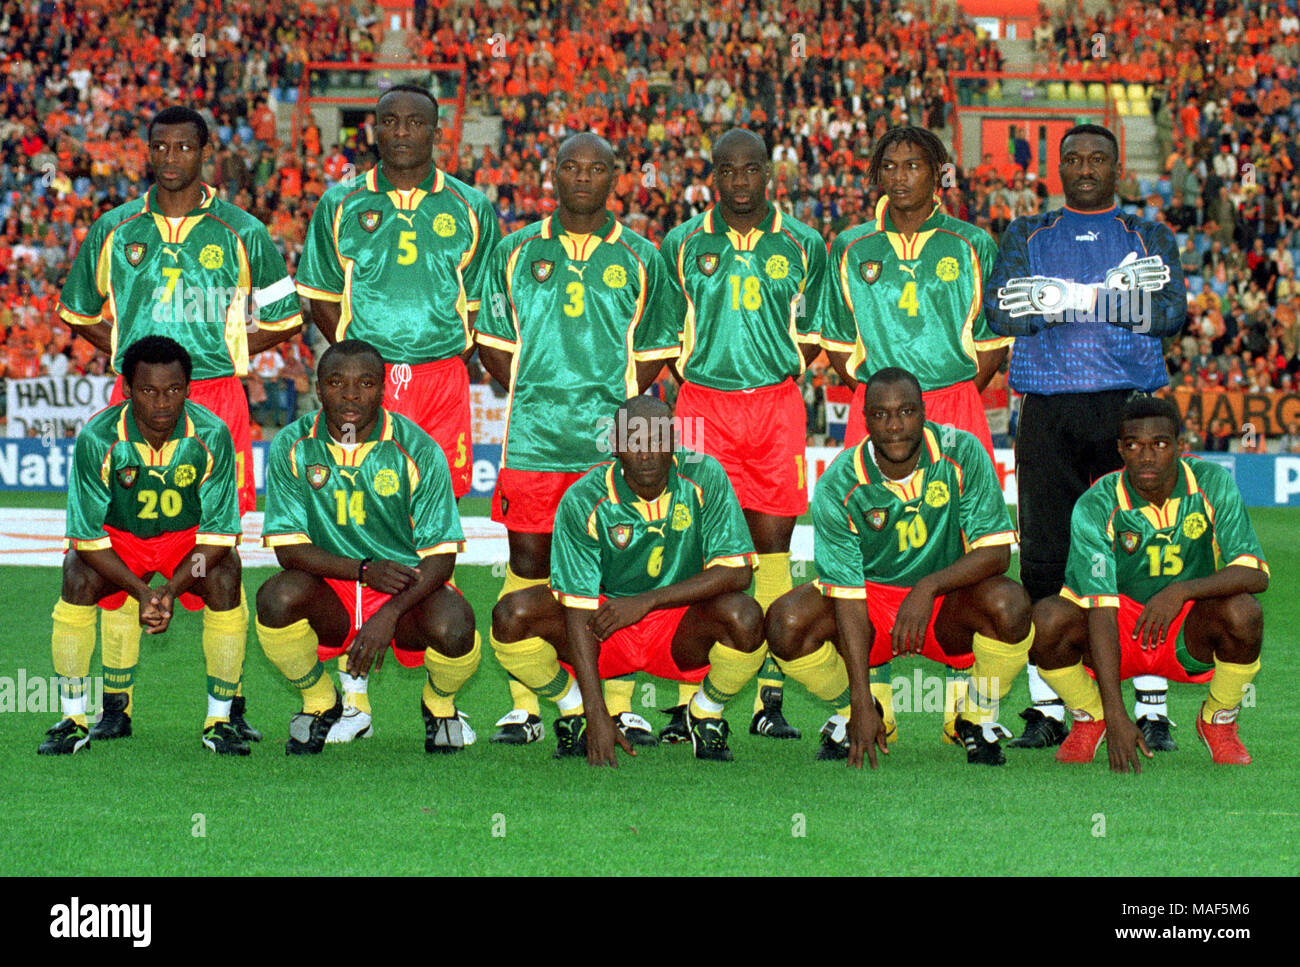 Gelredome Arnheim, Netherlands 27.5.1998 Football, international friendly: Netherlands vs Cameroon 0:0 --- team Cameroon, back row from left: Francois OMAM-BIYIK, Raymond KALLA, Pierre WOME, Samuel IPOUA, Rigobert SONG, Jacques SONGO'O front row from left: Salomon OLEMBE, Augustine SIMO, BEAKA, Patrick MBOMA, NDO - Stock Image